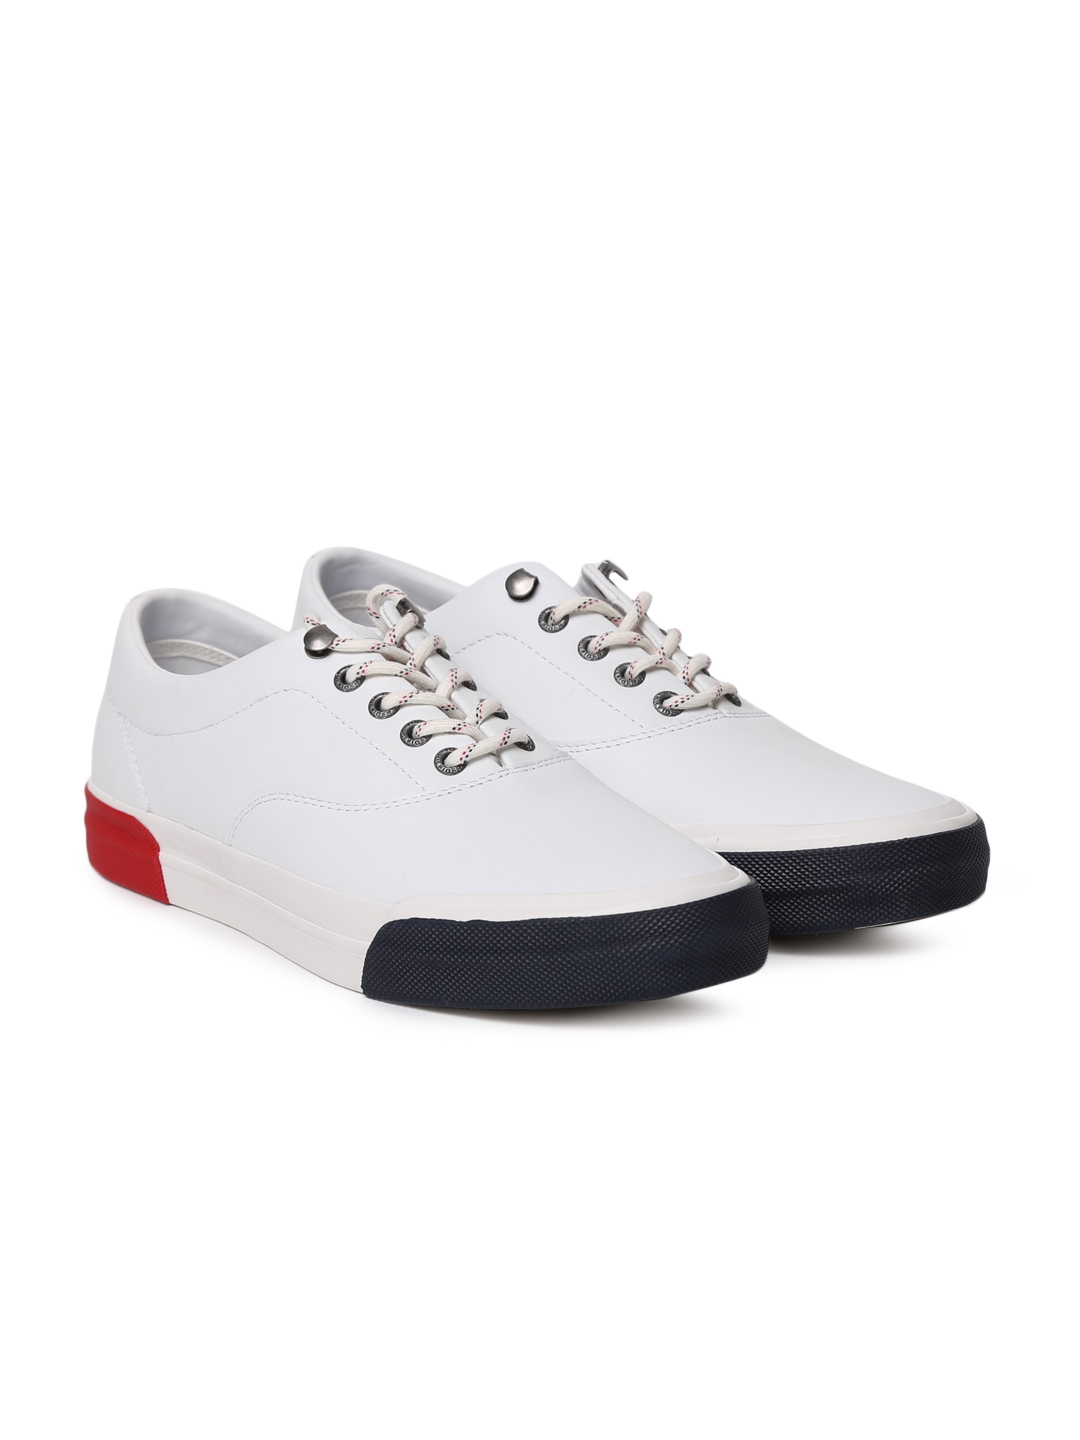 db8d988547fec Buy Tommy Hilfiger Men White Sneakers - Casual Shoes for Men 2003073 ...